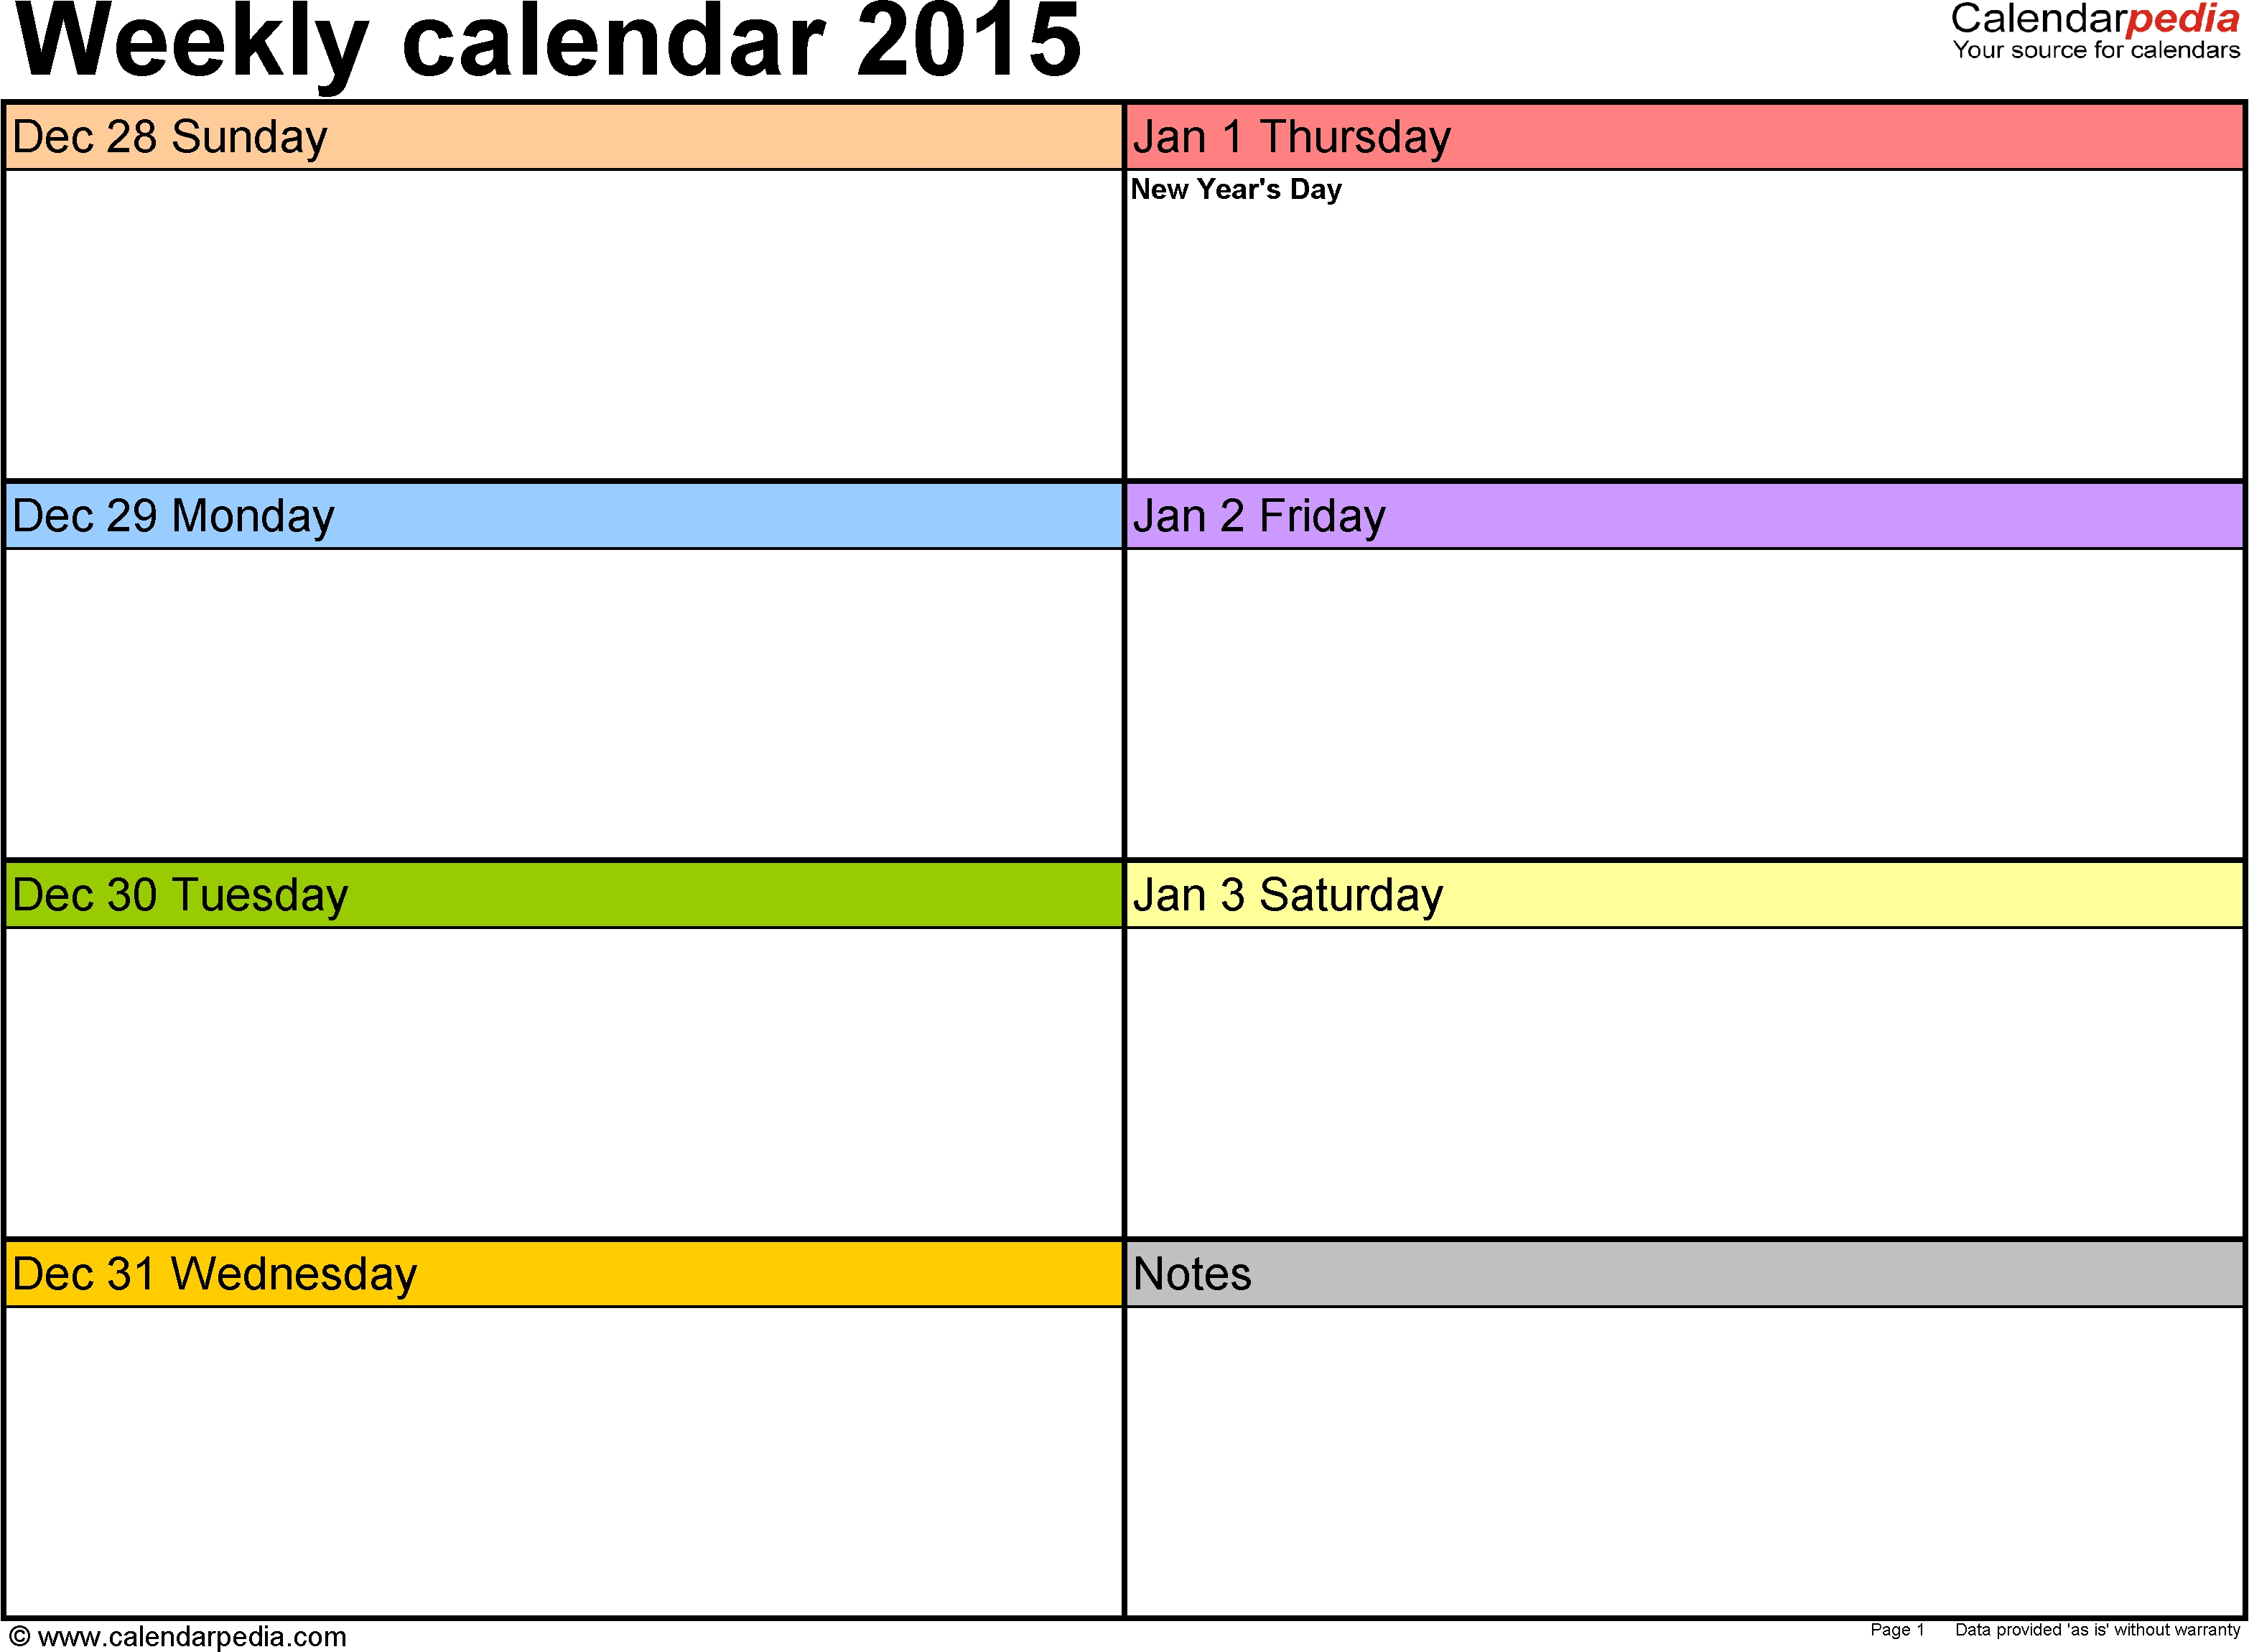 Weekly Calendar 2015 For Pdf - 12 Free Printable Templates  7 Days A Week Planner